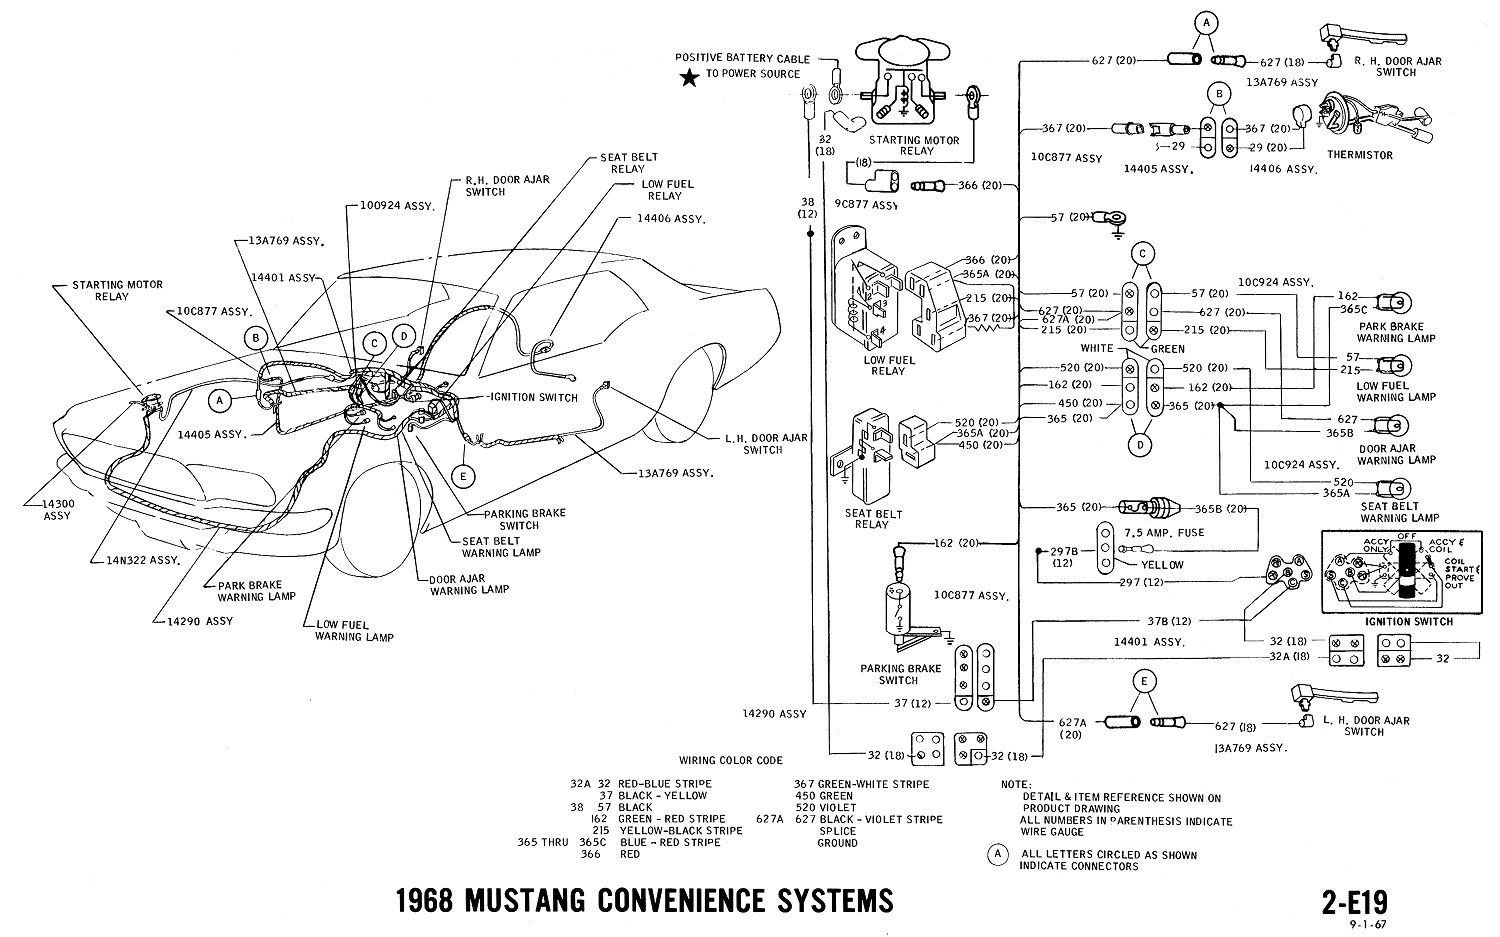 1967 mustang wiring and vacuum diagrams average joe 1968 Mustang Wiring Harness Diagram 2007 Mustang Wiring Harness Diagram